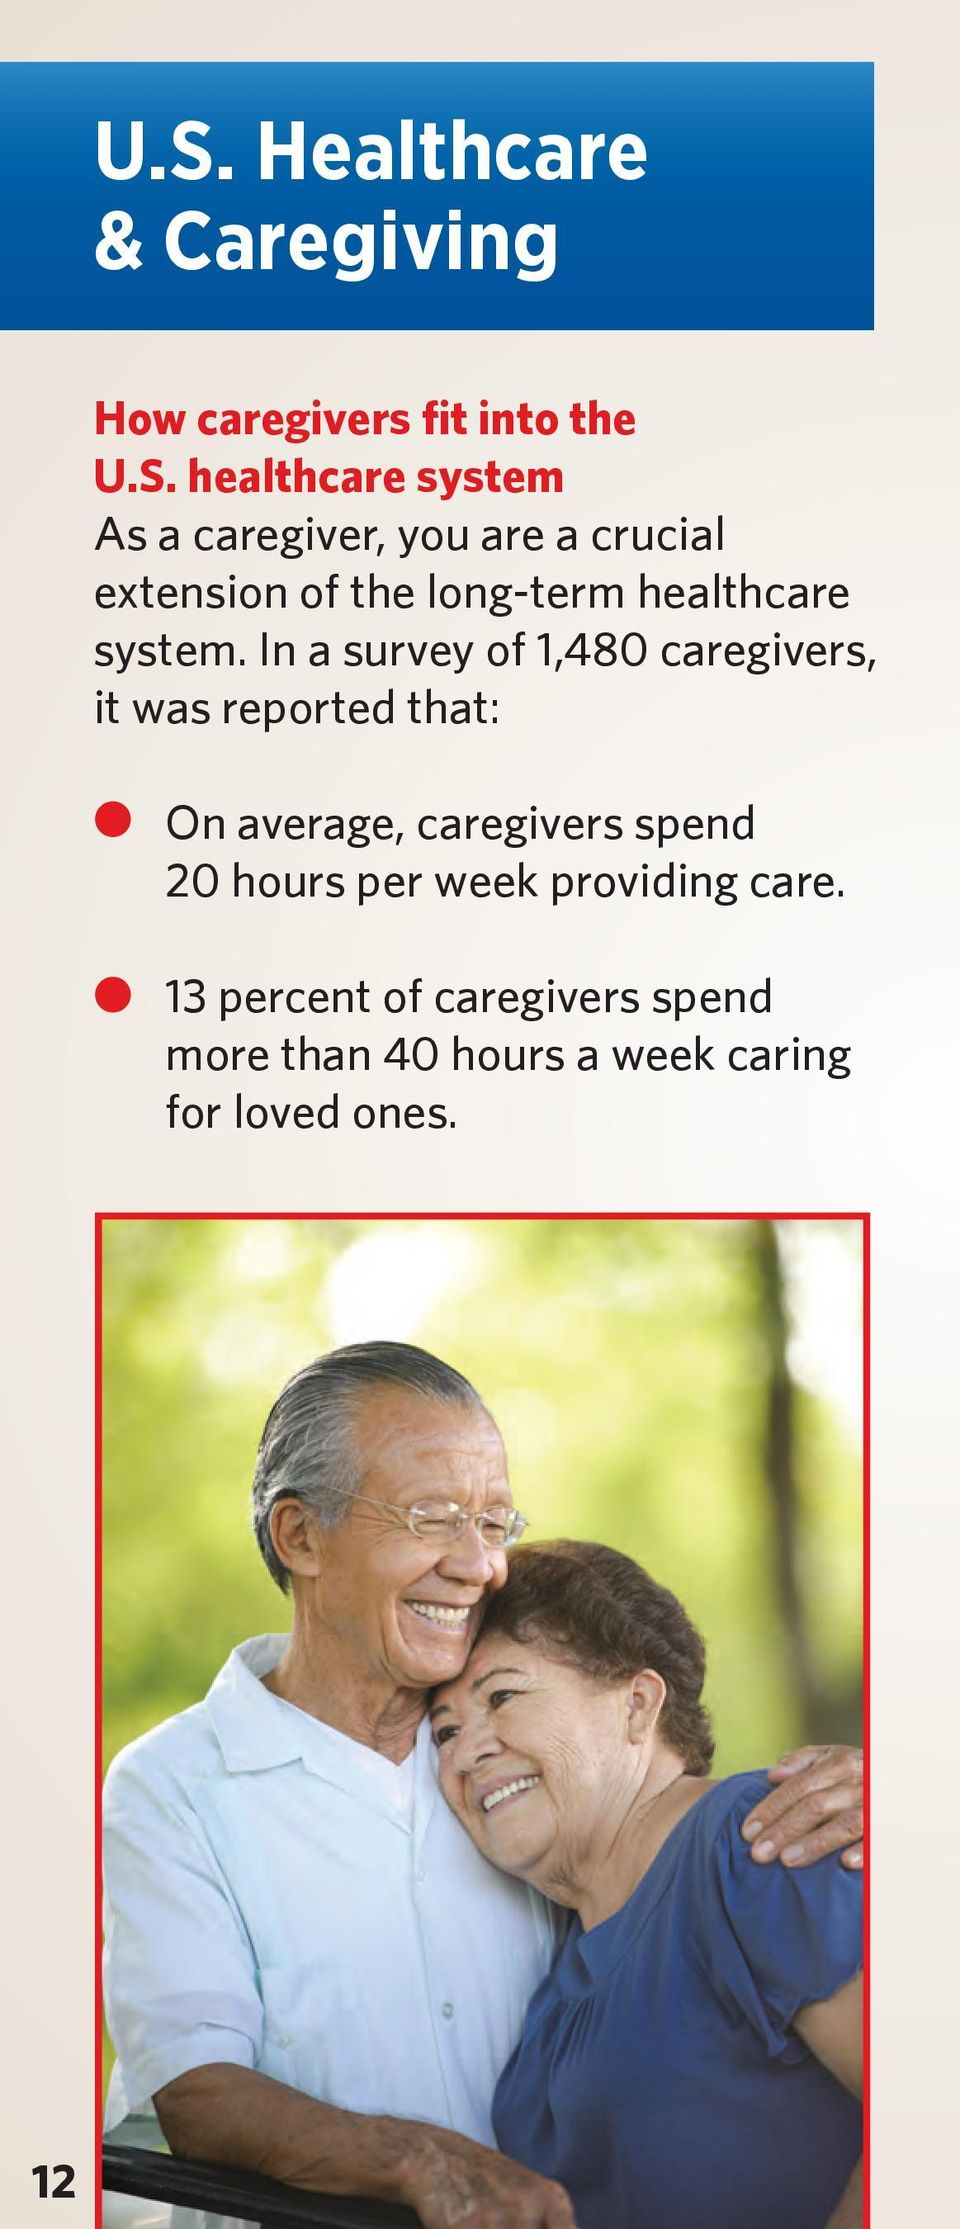 In a survey of 1,480 caregivers, it was reported that: On average, caregivers spend 20